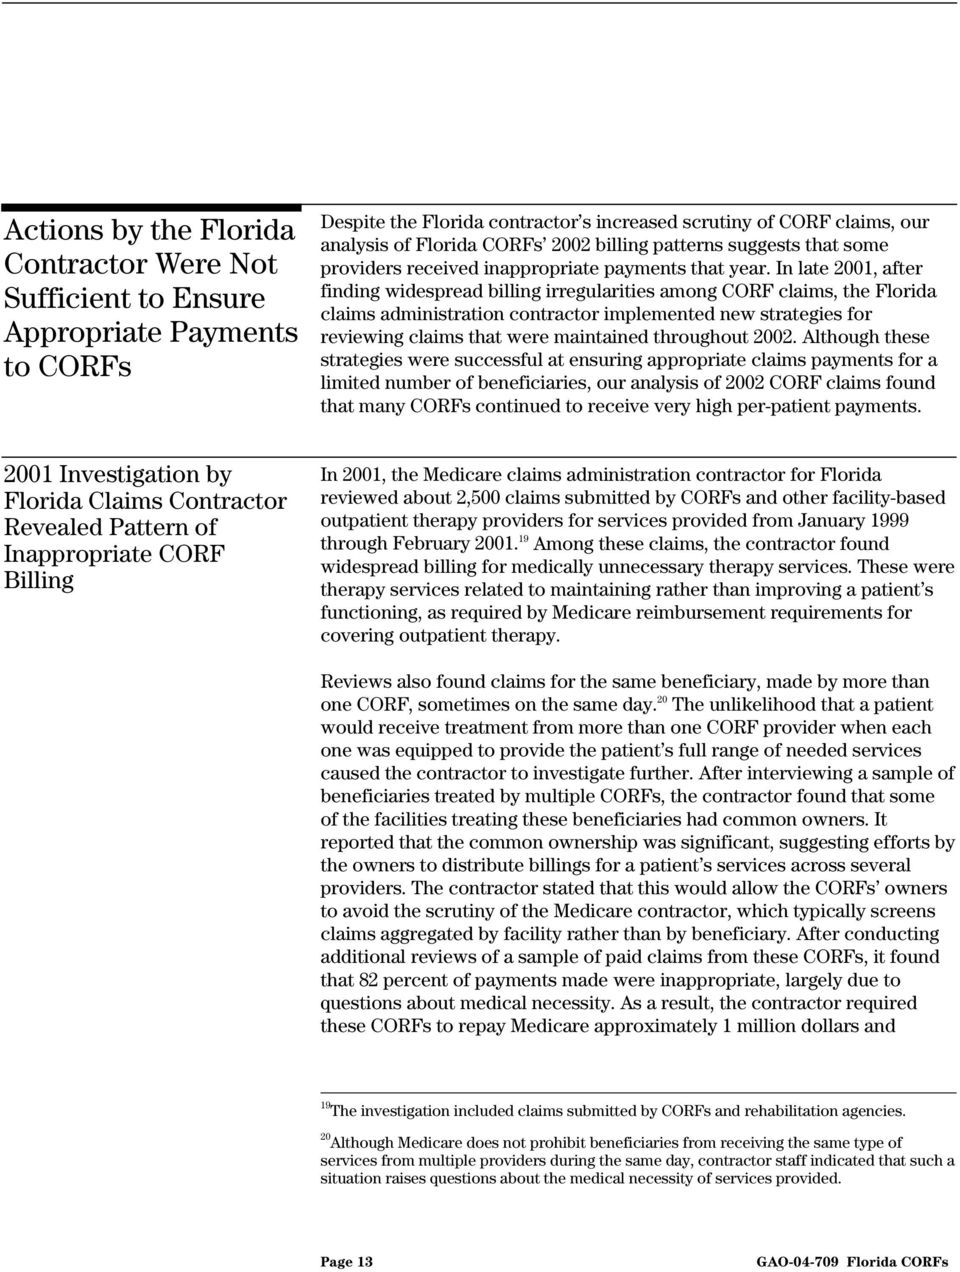 In late 2001, after finding widespread billing irregularities among CORF claims, the Florida claims administration contractor implemented new strategies for reviewing claims that were maintained